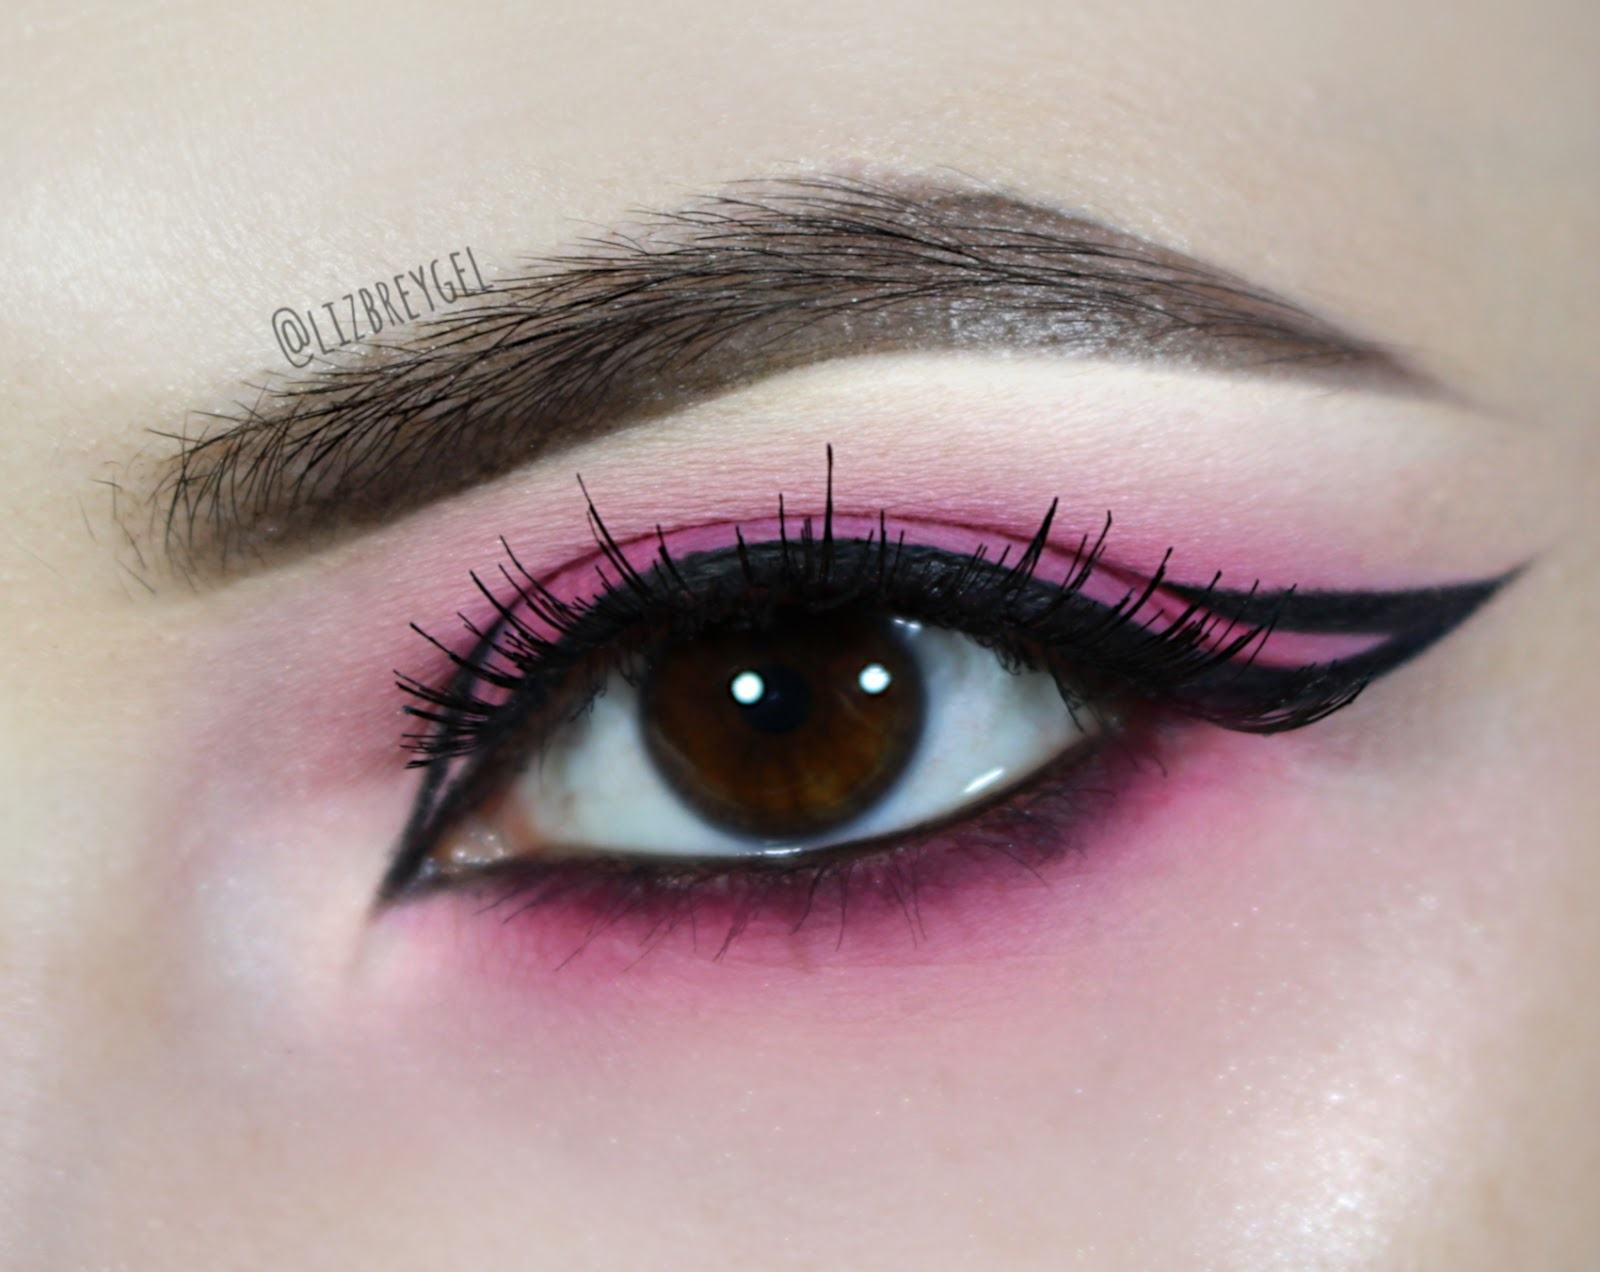 bubblegum pink and graphic eyeliner makeup look on brown eyes